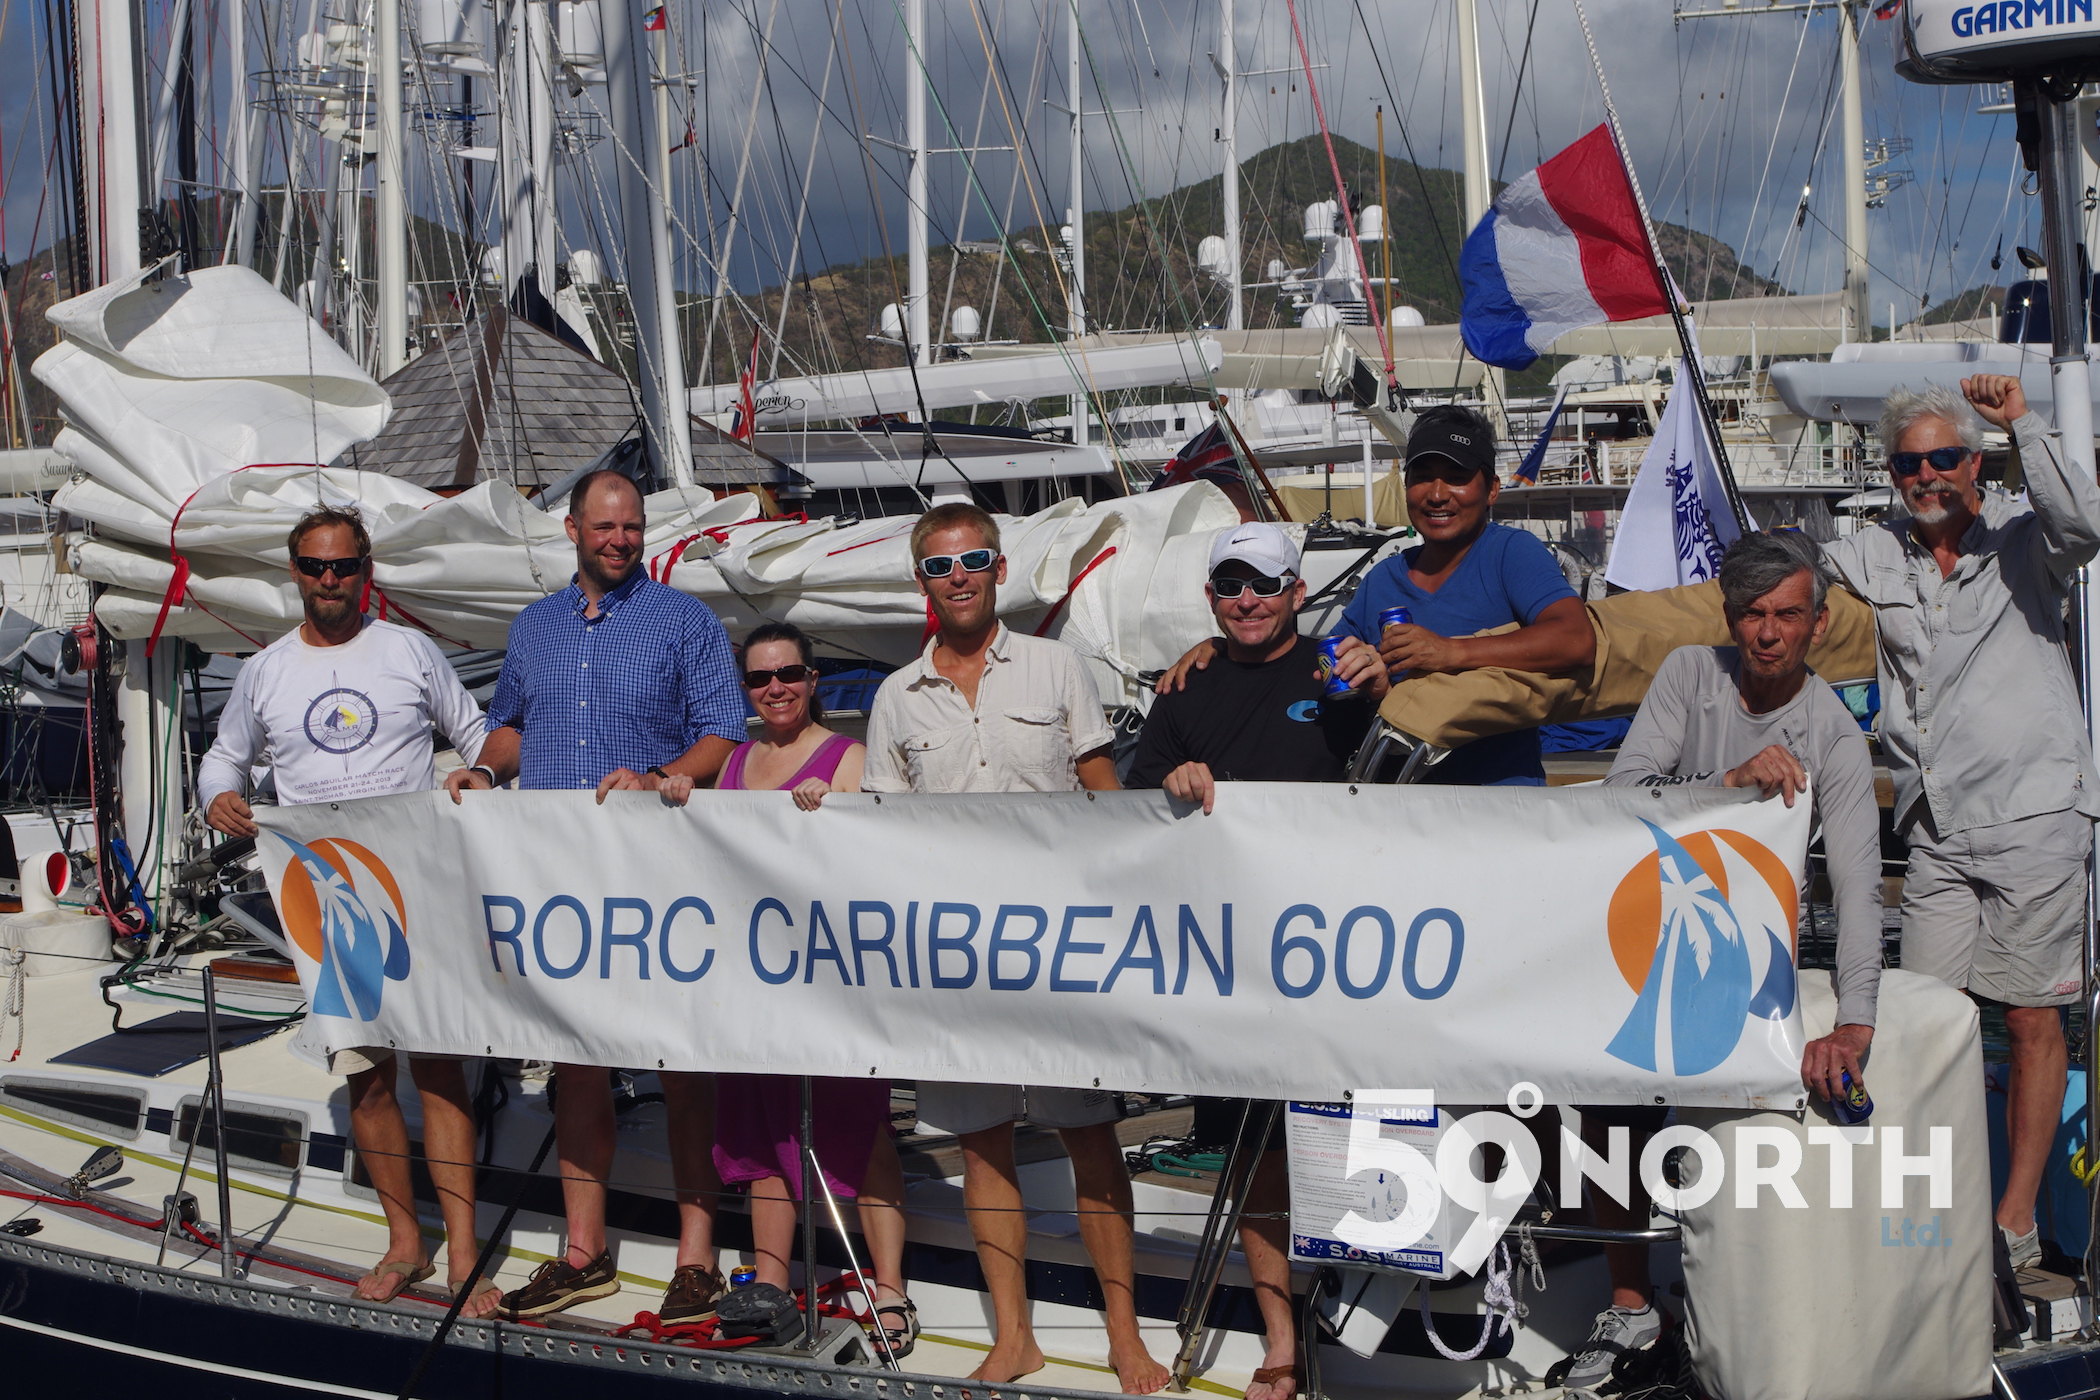 RORC Caribbean 600, unfortunately we had to quit the race after 2/3 of the course du to a leaky rudder. Feb 2016